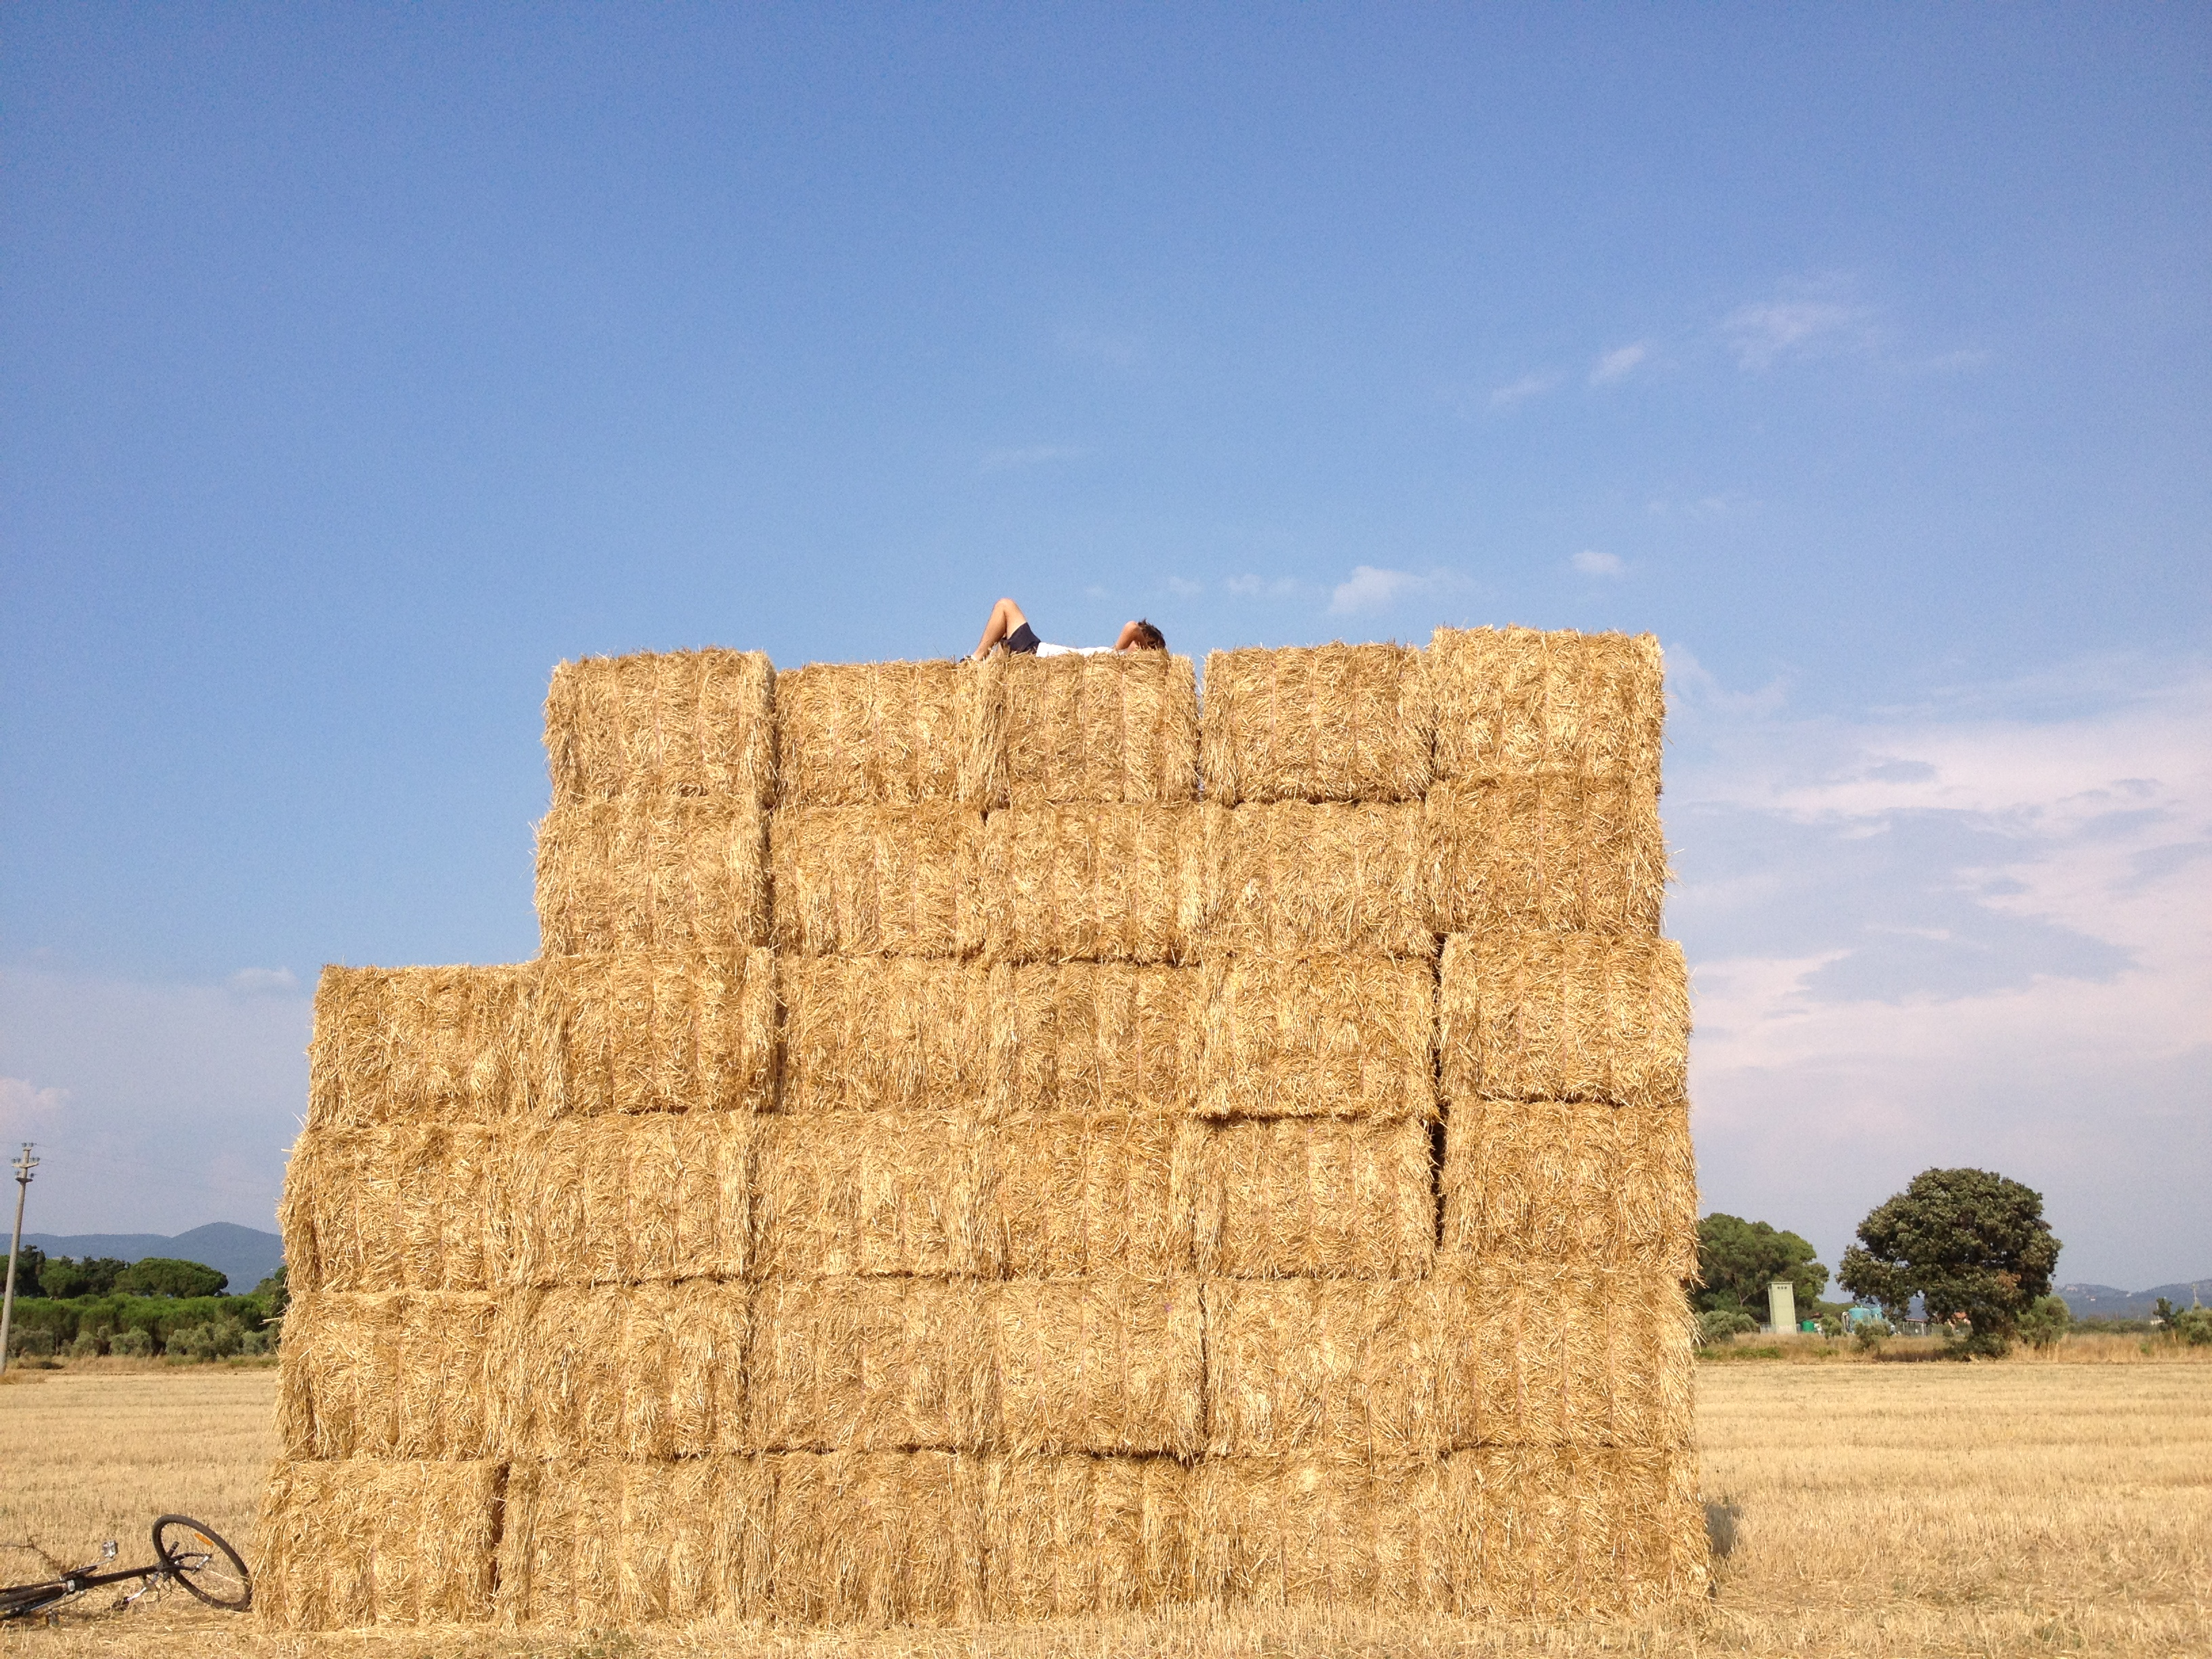 Resting on top of a hay tower.